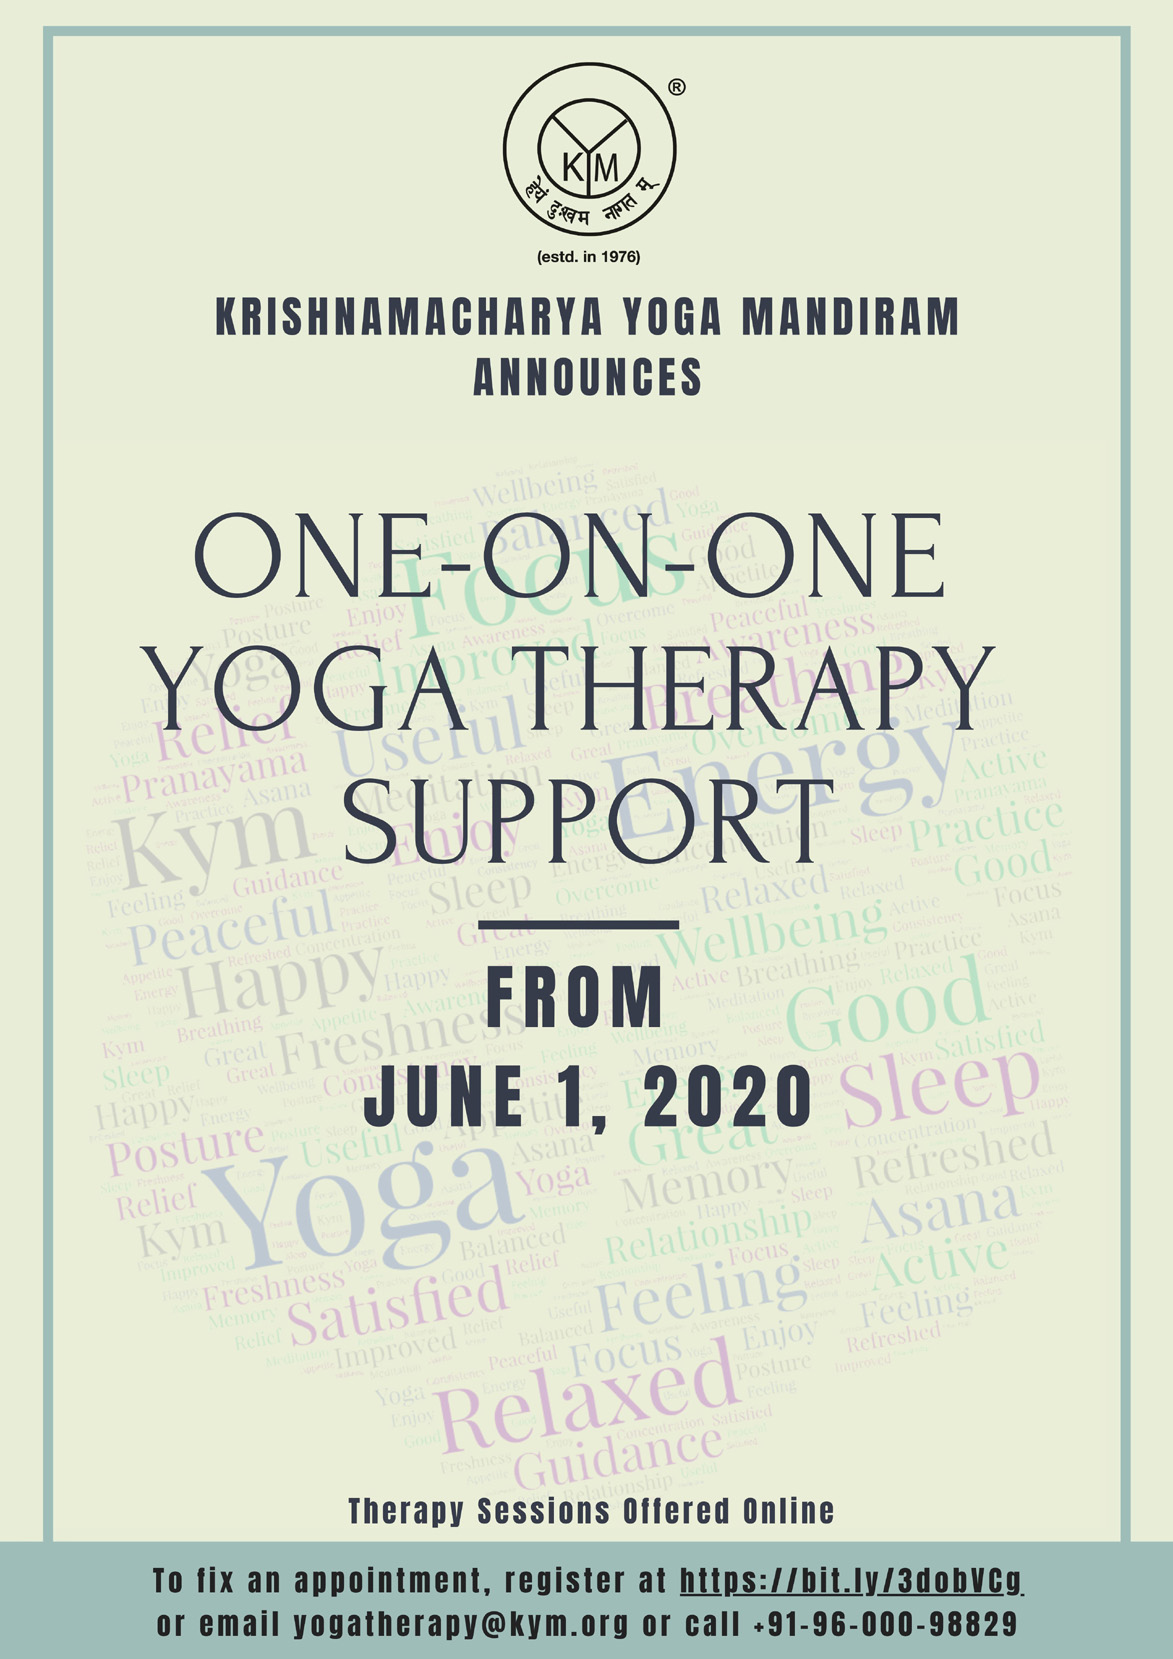 One-on-One Yoga Therapy Support